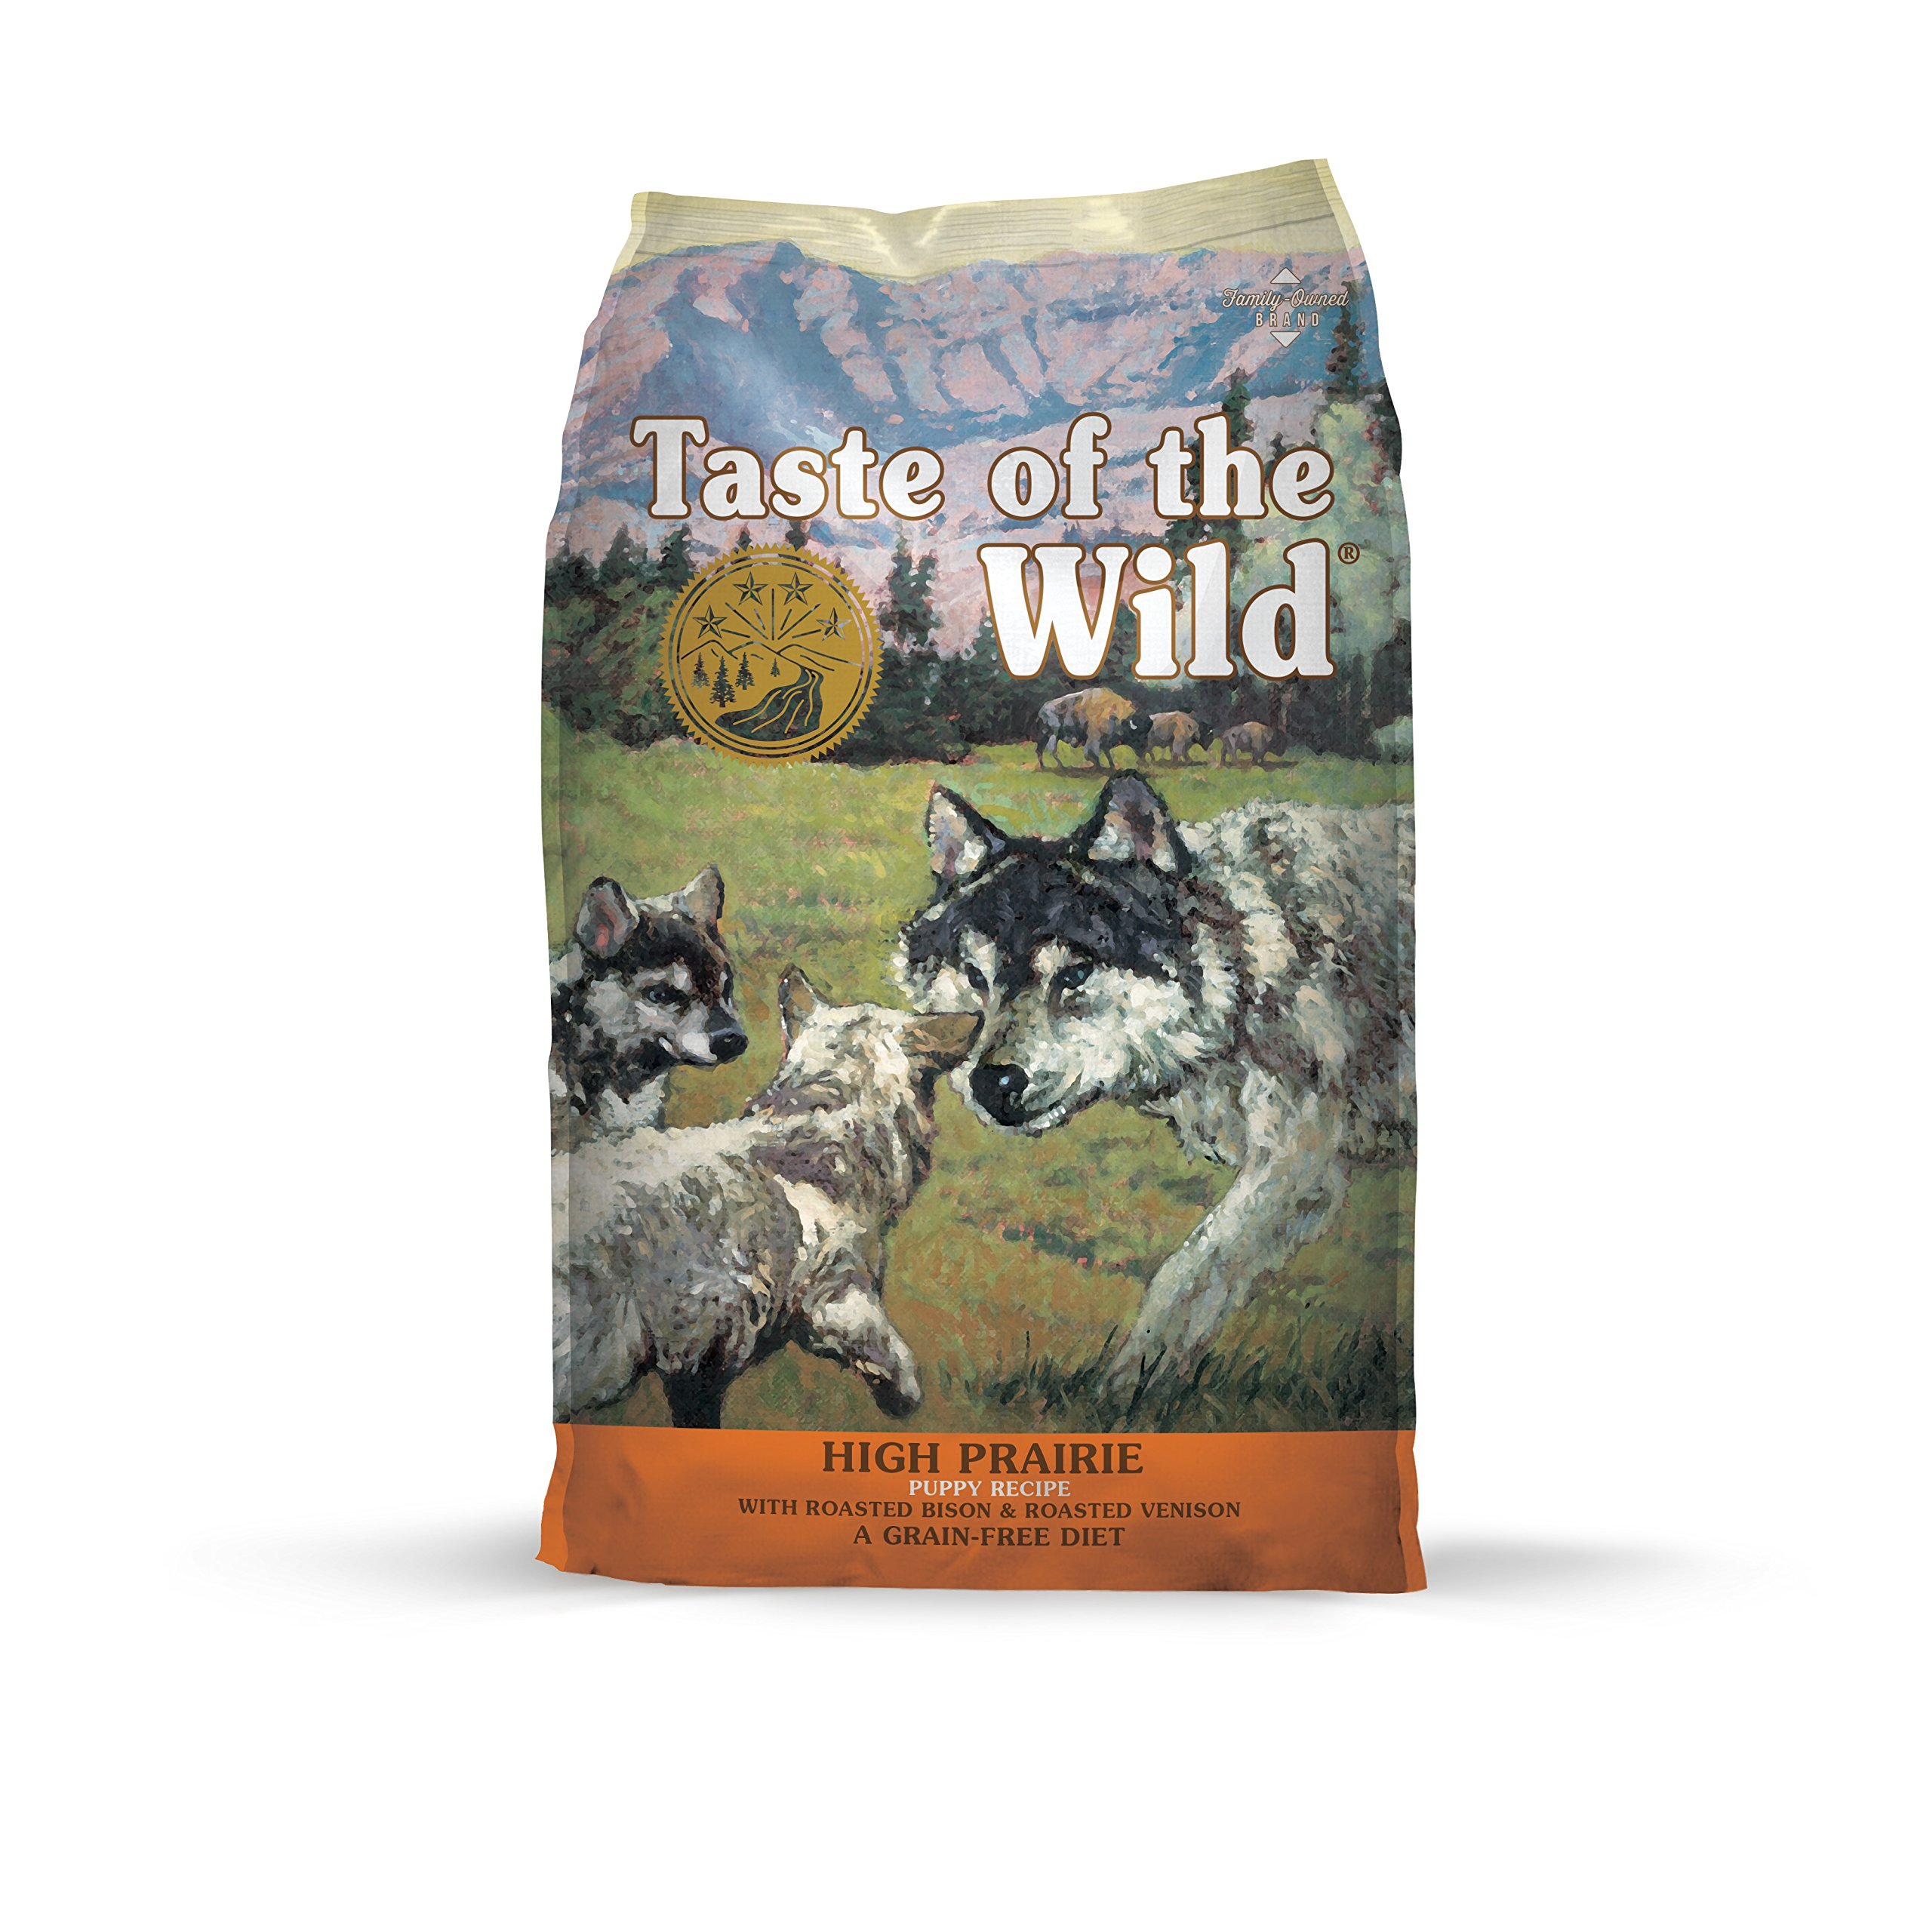 Taste of the Wild High Prairie Grain-Free Dry Puppy Food with Roasted Venison & Bison 30lb